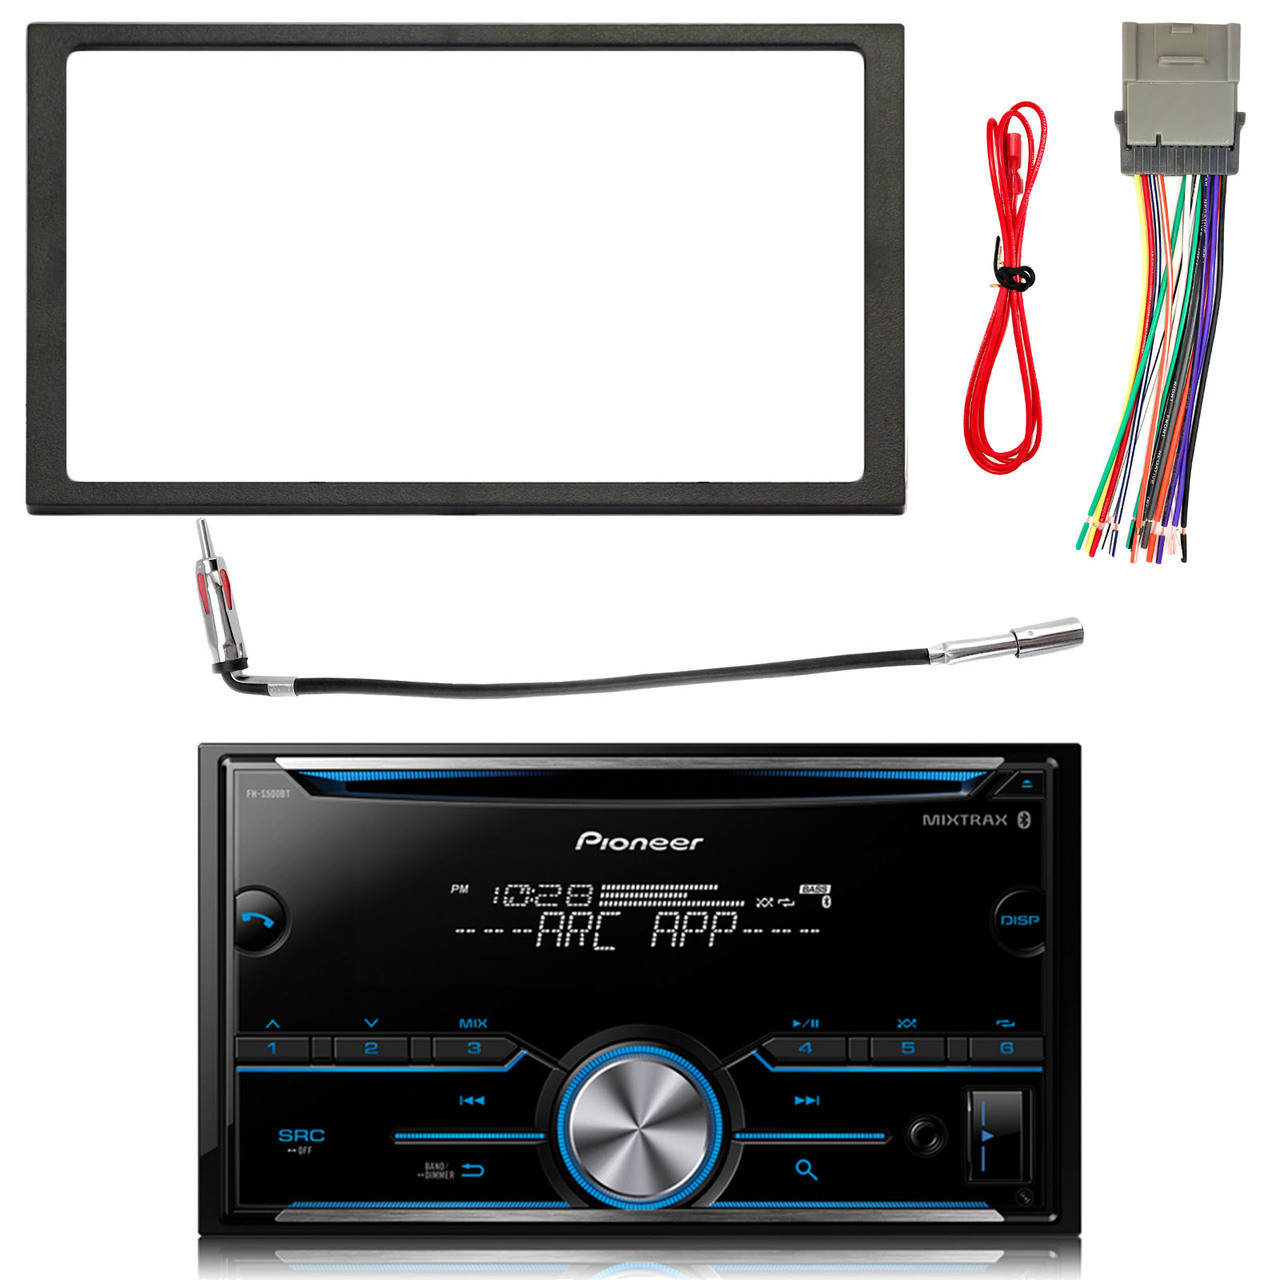 Pioneer Double Din Bluetooth Mixtrax Cd Receiver 4x 65 Speakers Stereo Wiring Harness Enrockautomotive